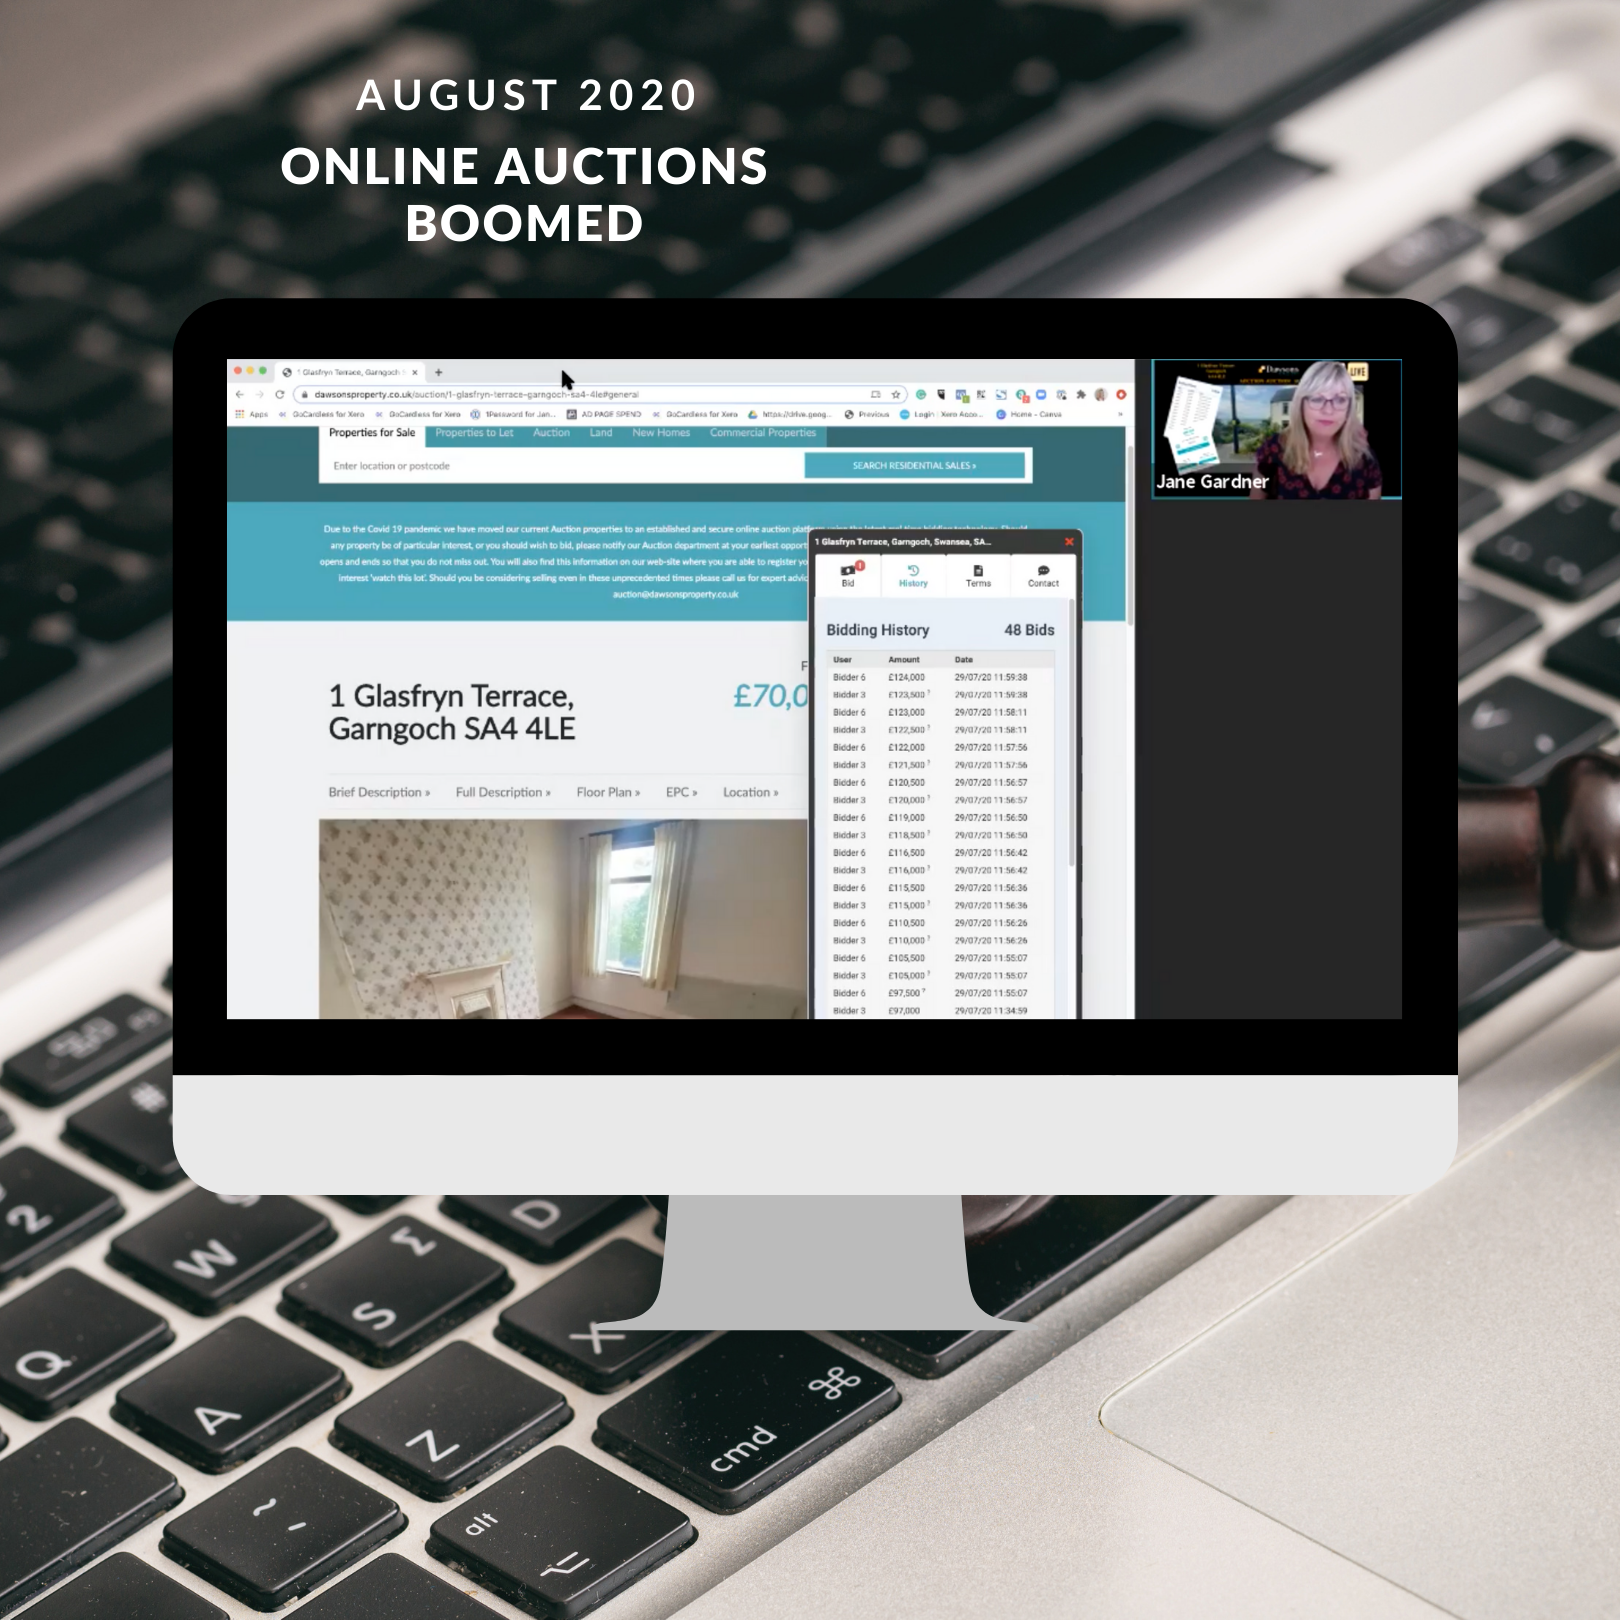 Dawsons online auctions take over the internet in 2020